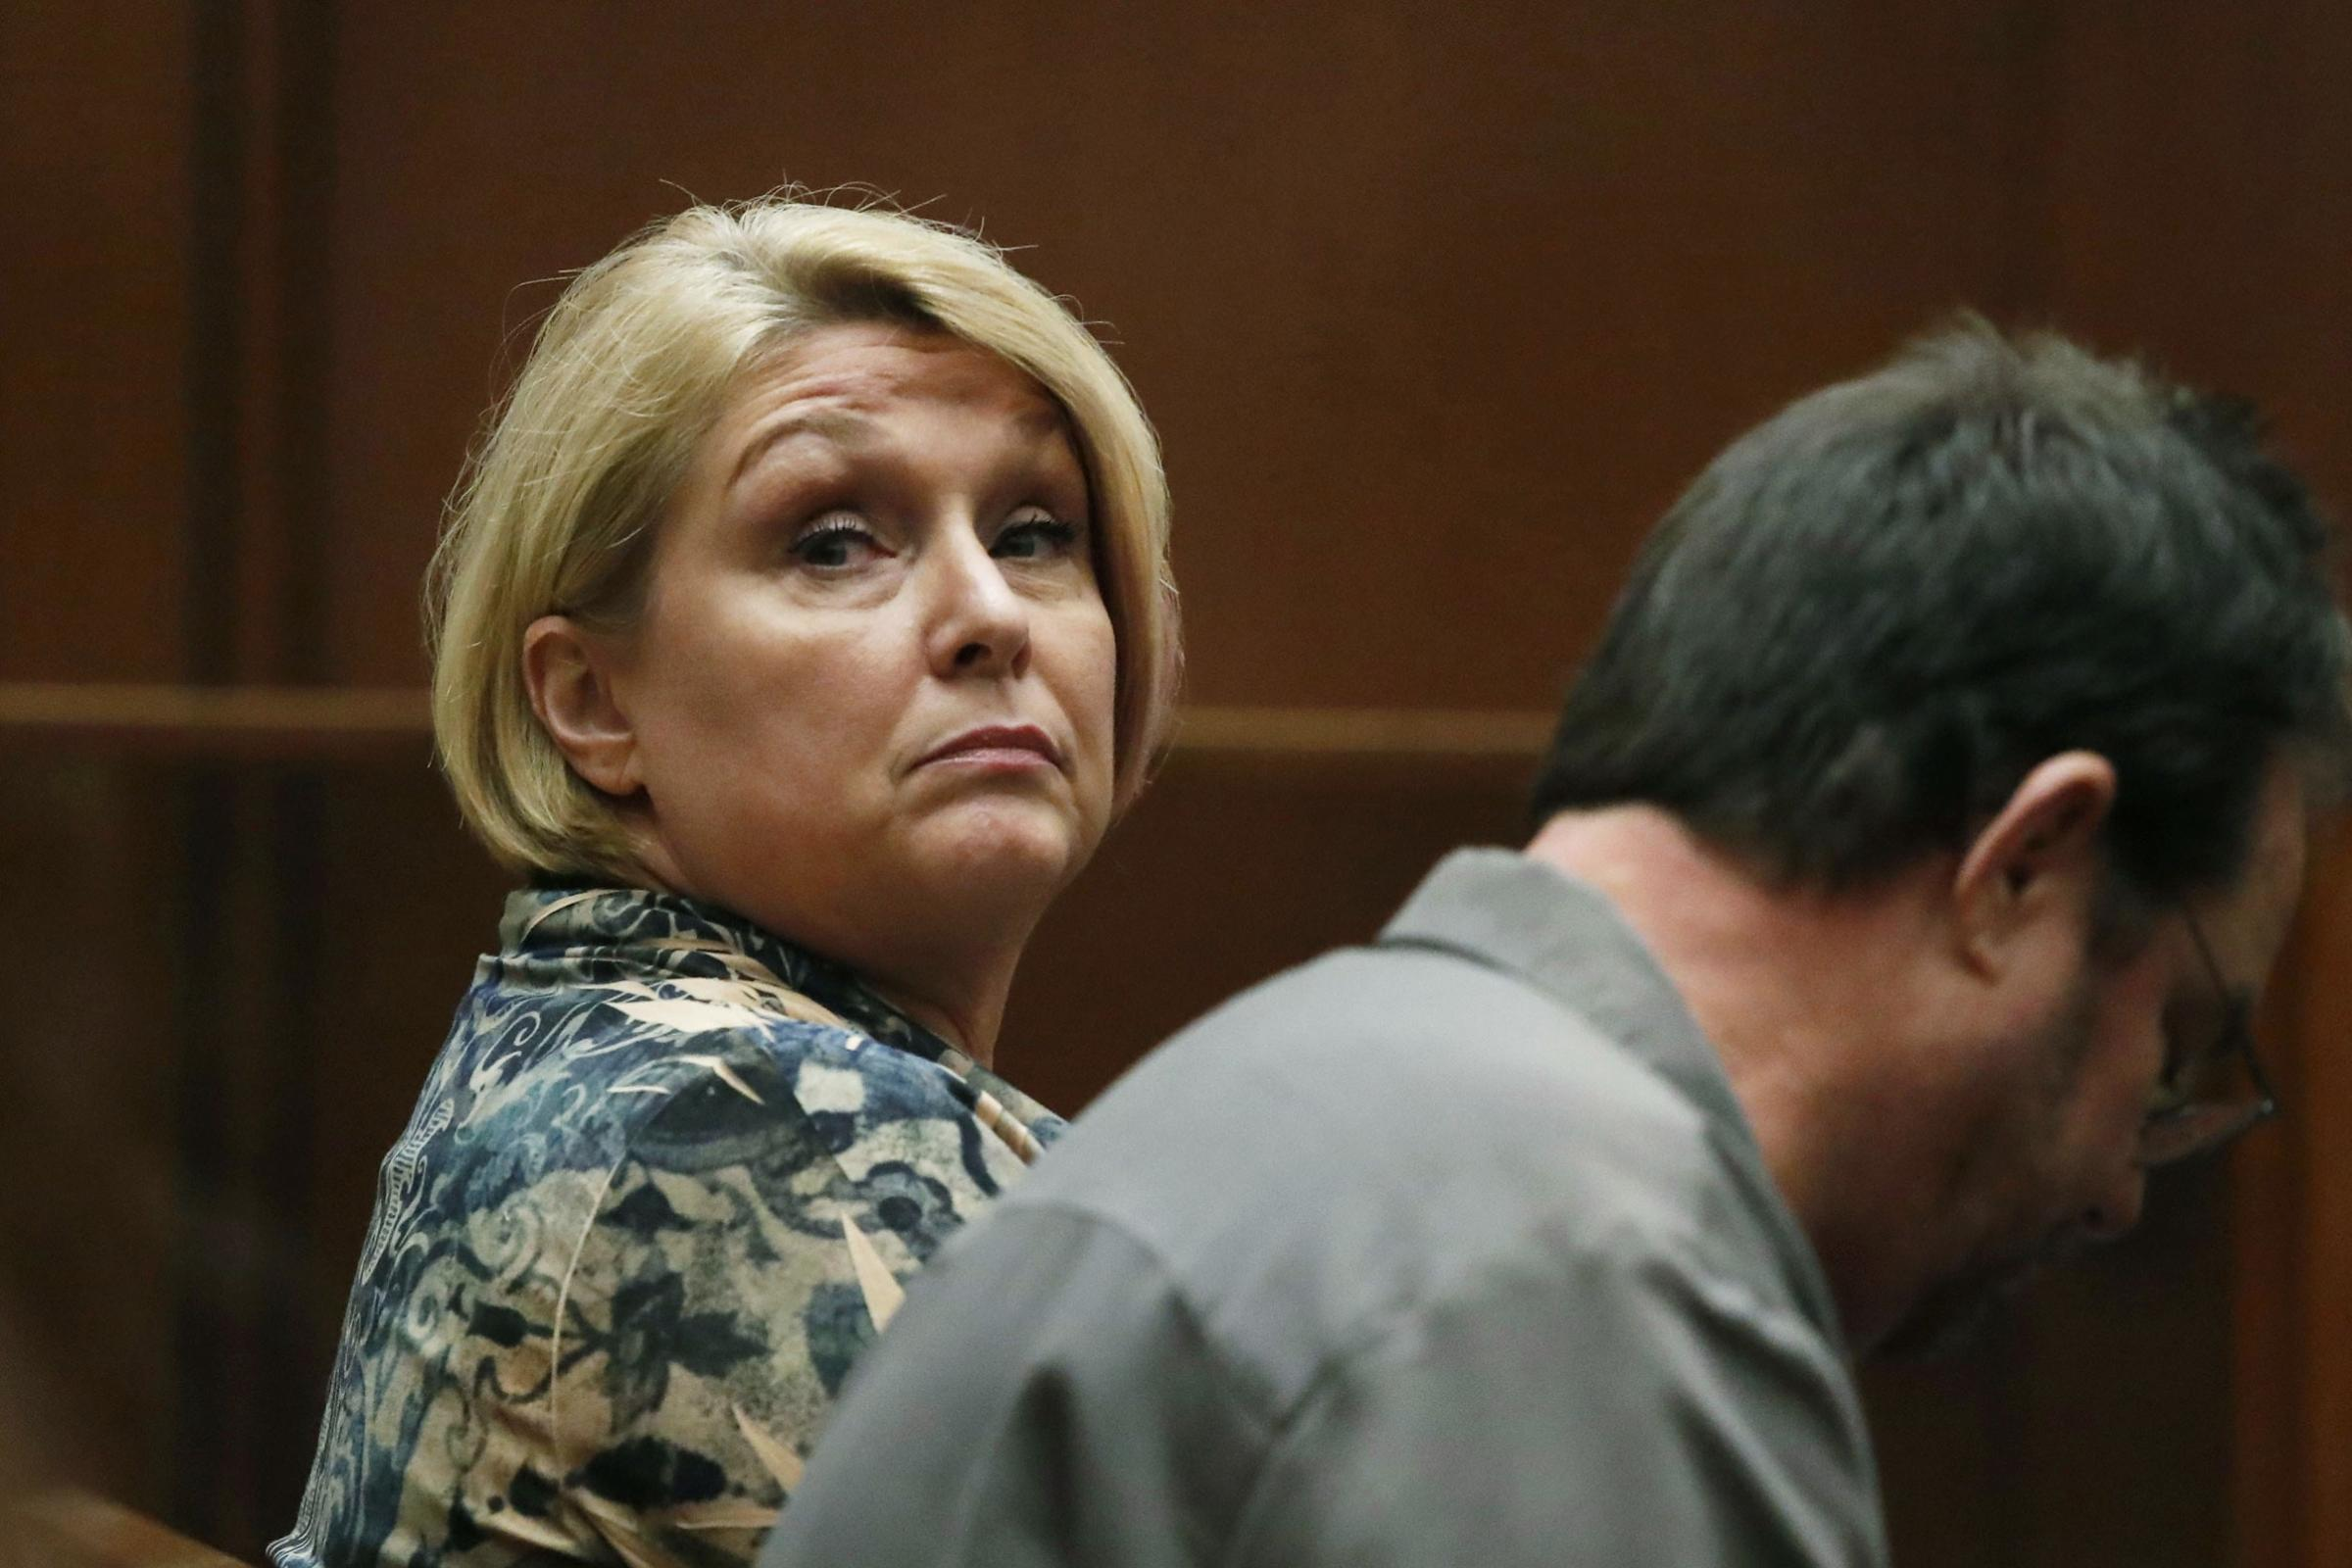 Samantha Geimer pleaded for the judge to drop the case (Paul Buck/AP)